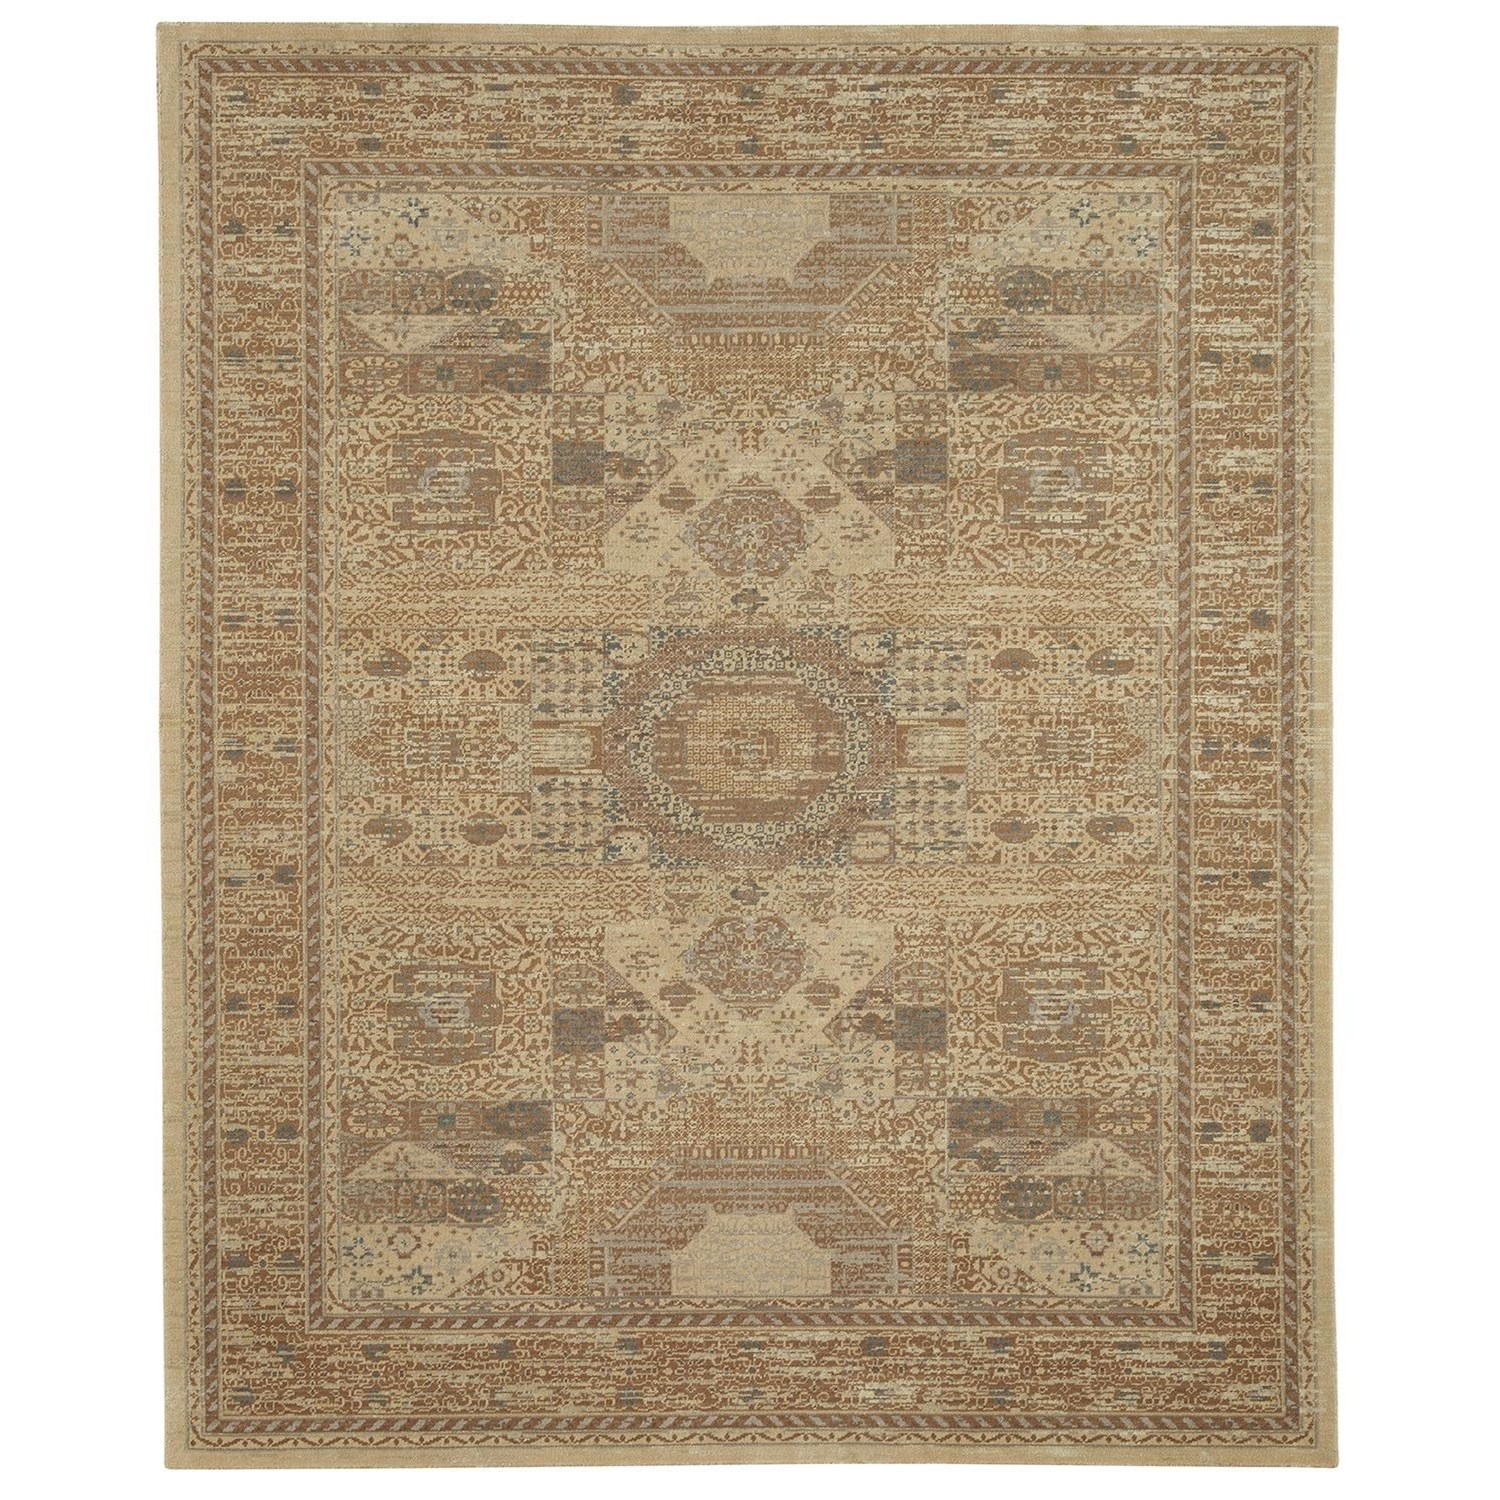 Karastan Rugs Evanescent 8'6x11'6 Baron Light Rug - Item Number: RG818 0014 102138